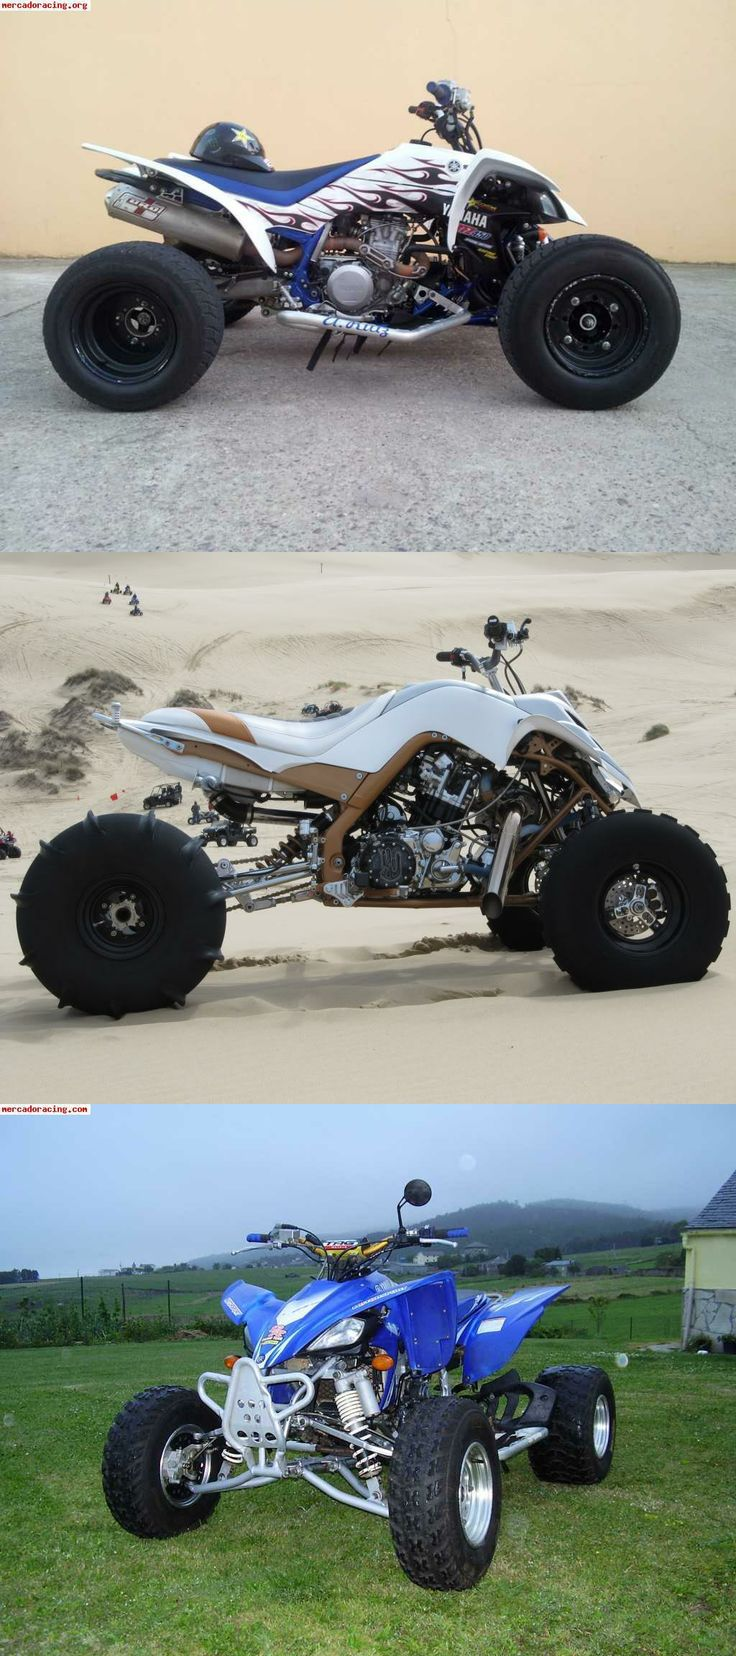 Only like the second one atv motocrosssand toys4 wheelersdirt